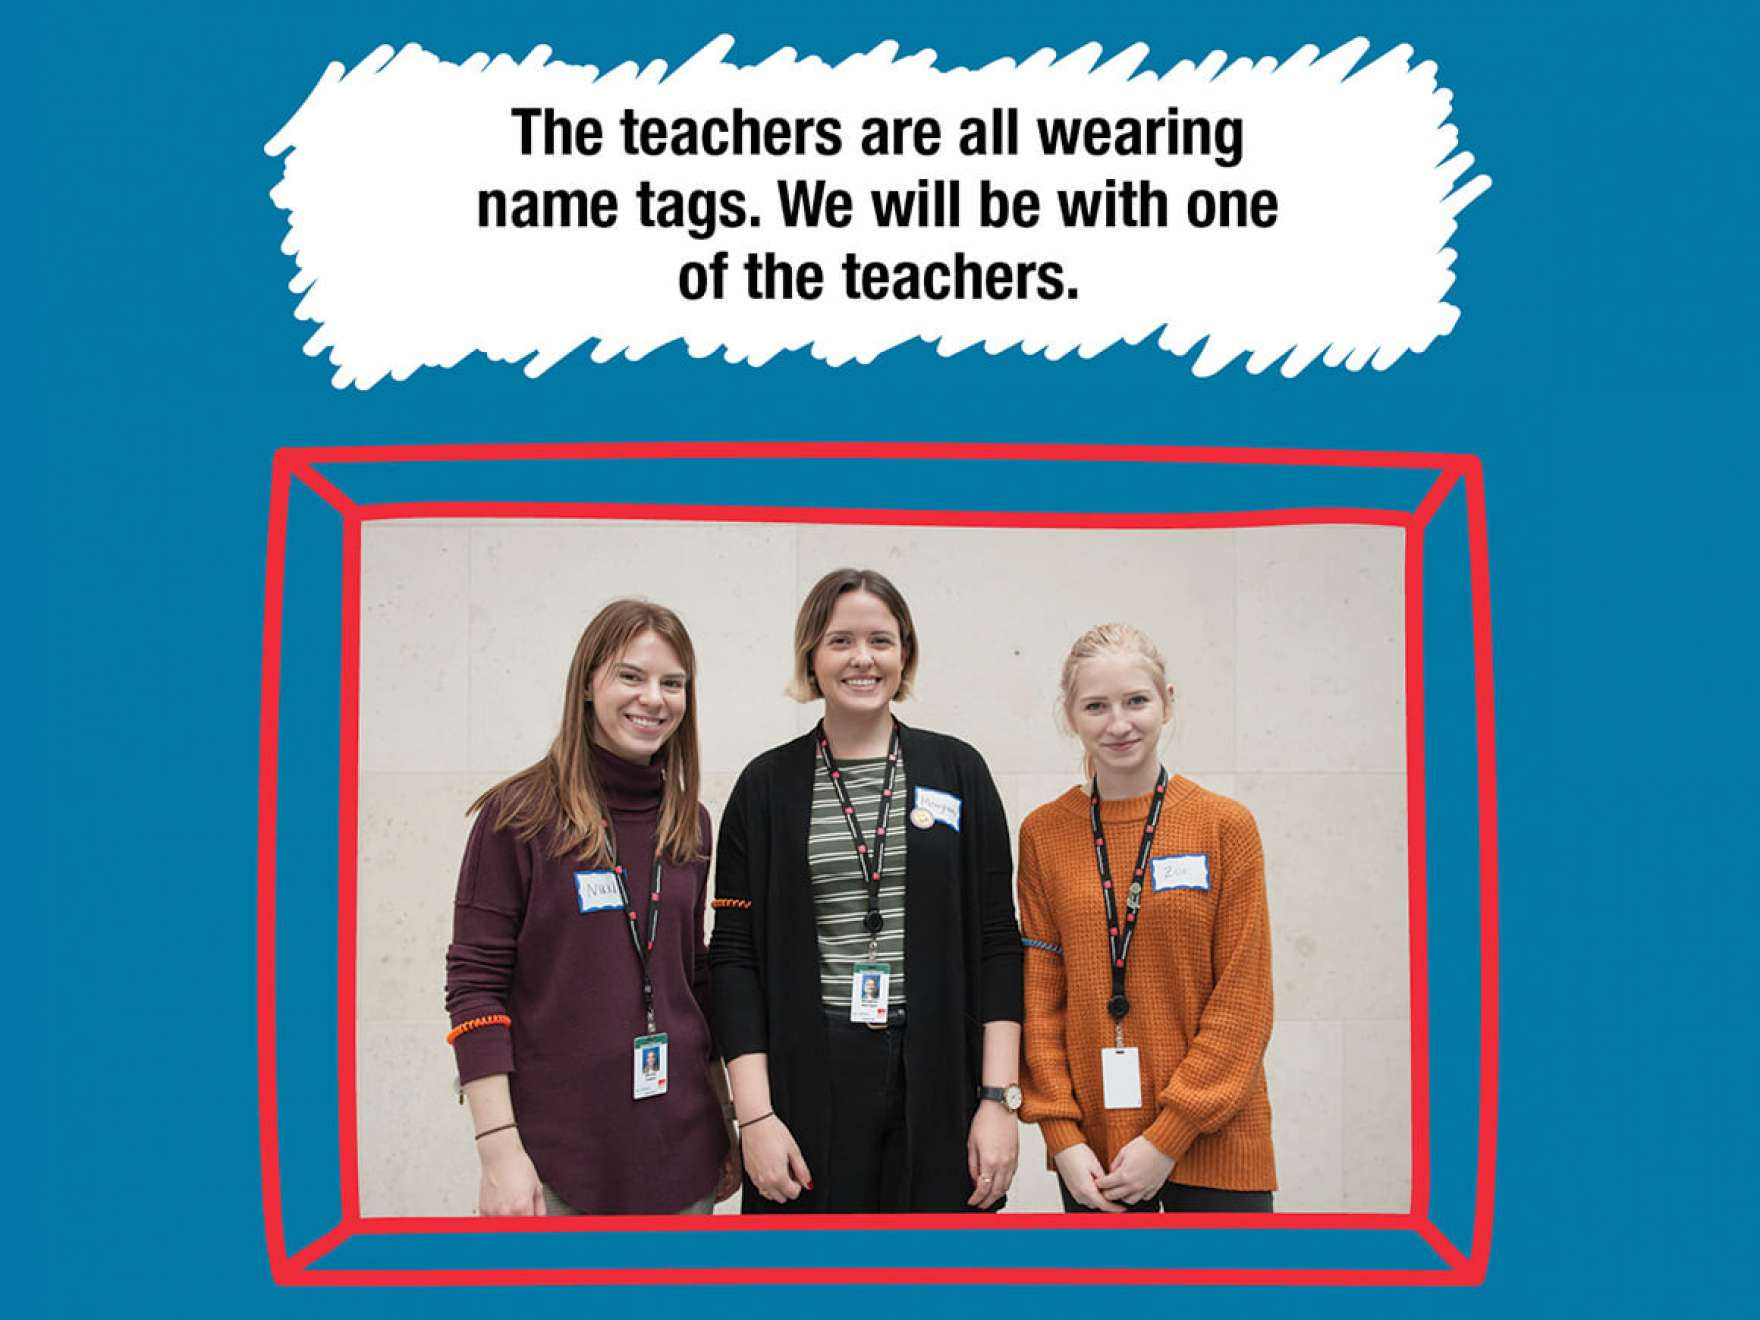 The teachers are all wearing 